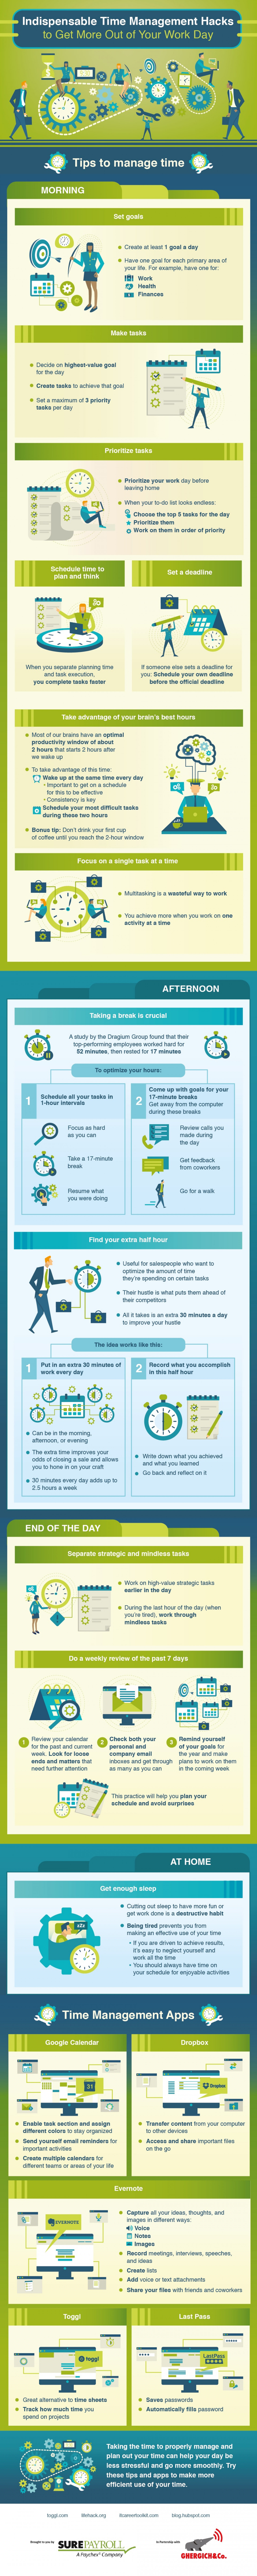 Indispensable Time Management Hacks to Get More Out of Your Work Day Infographic